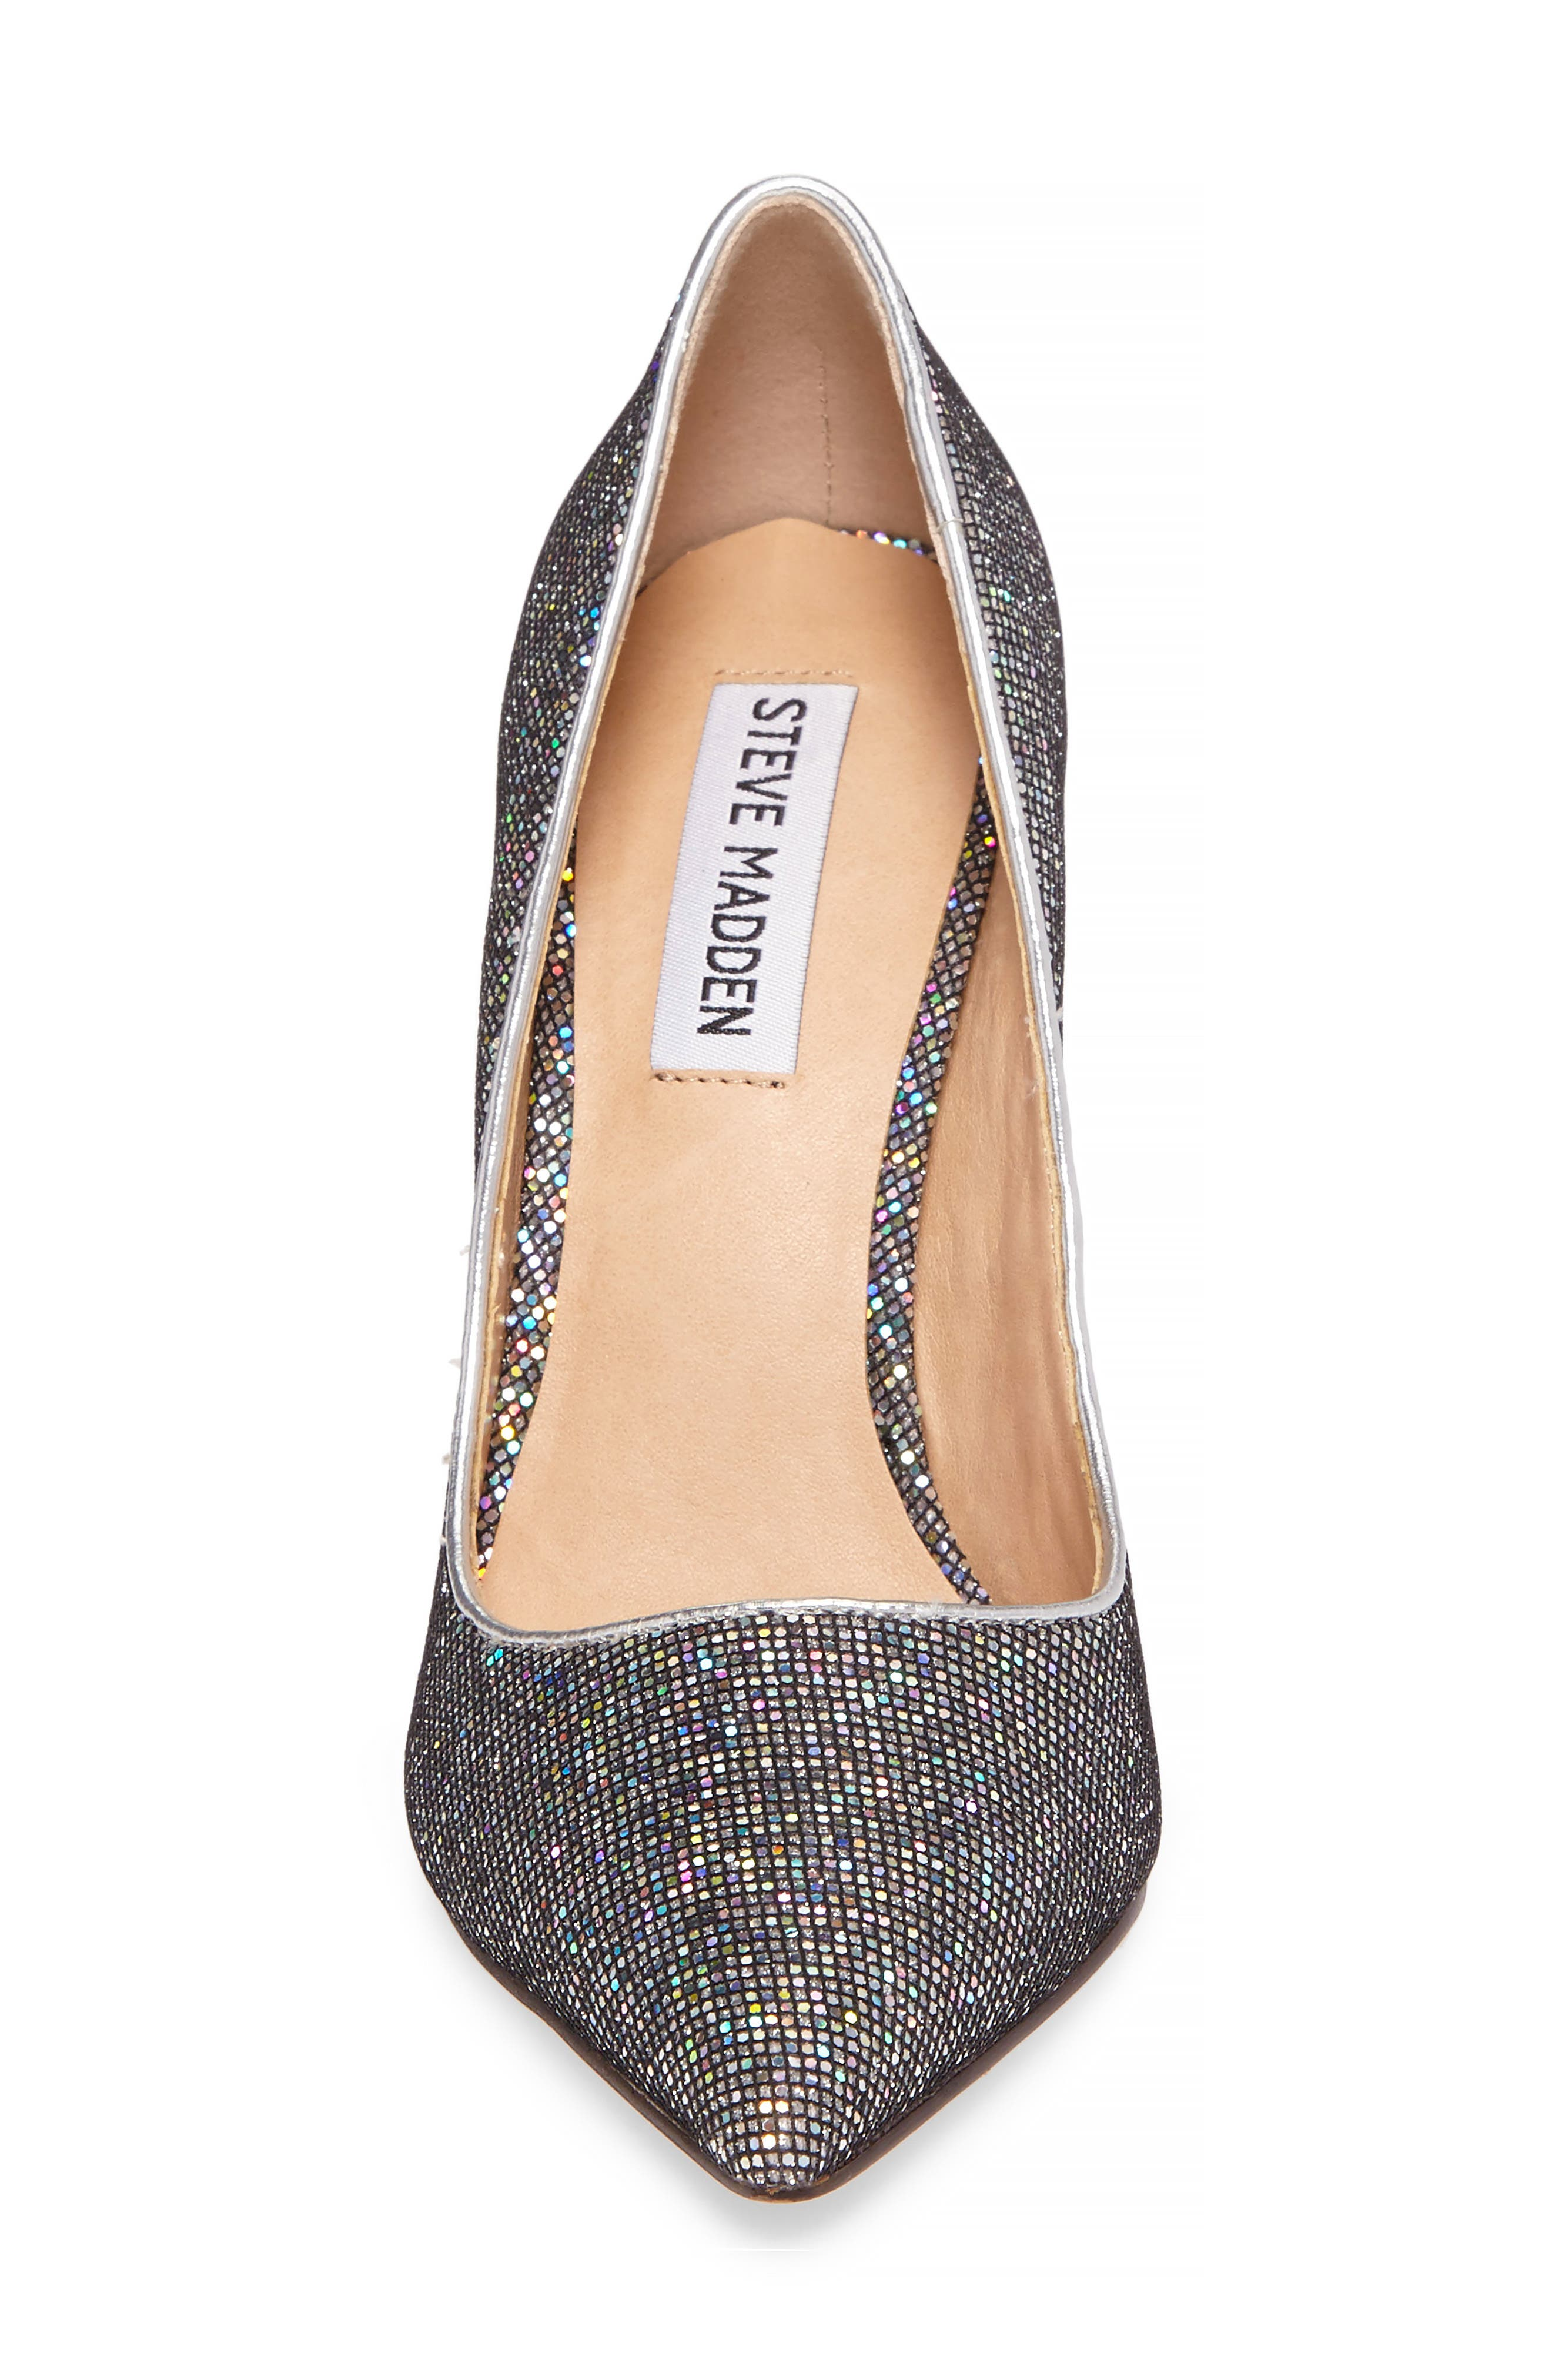 Daisie Pointy-Toe Pump,                             Alternate thumbnail 4, color,                             Black Multi Glitter